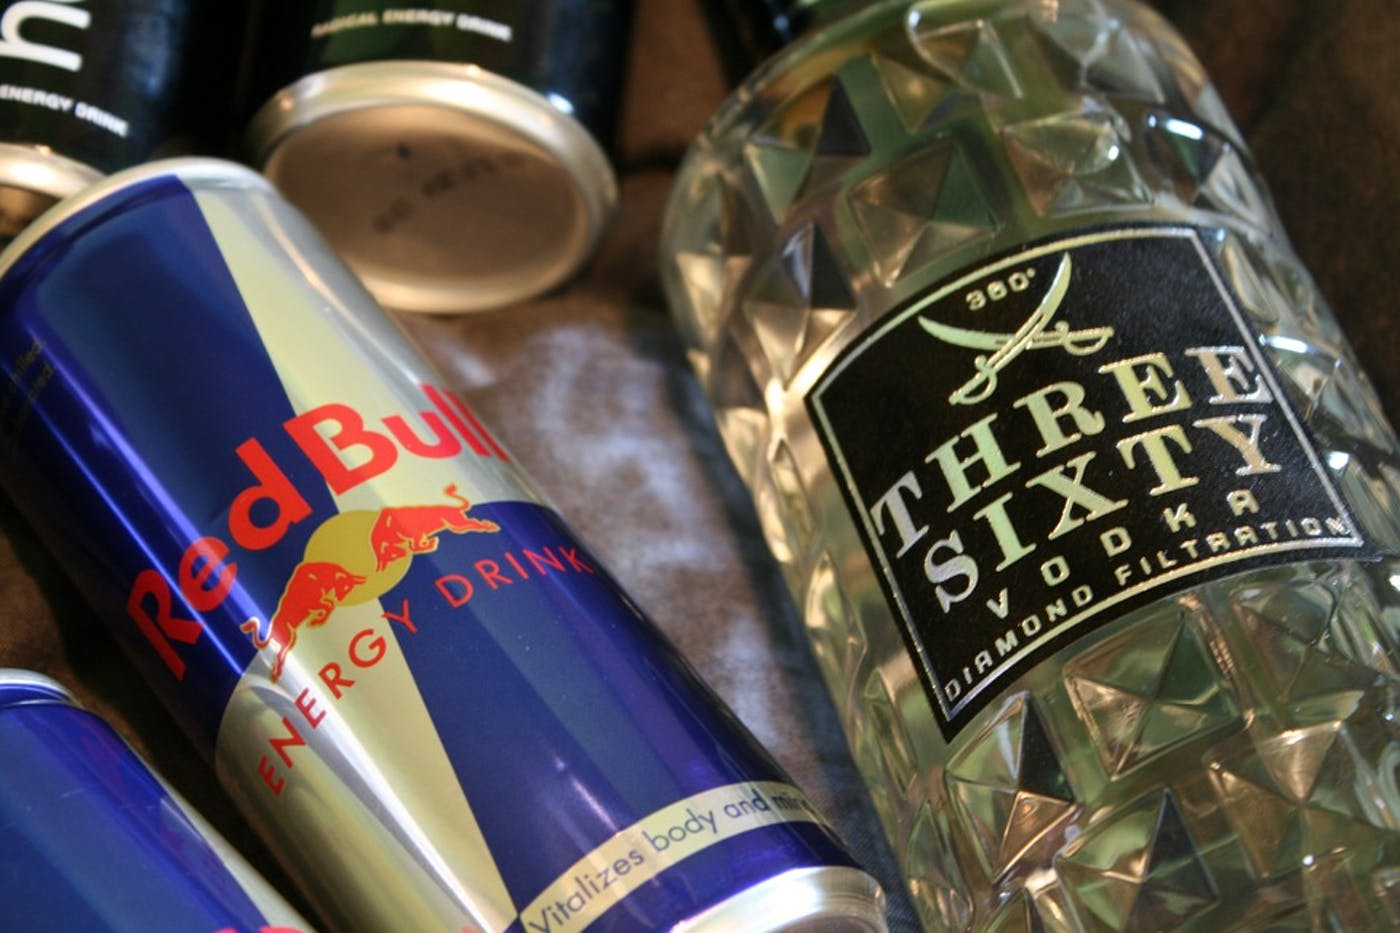 Taurine in Boozy Energy Drinks Makes the Bad Parts of Alcohol Worse